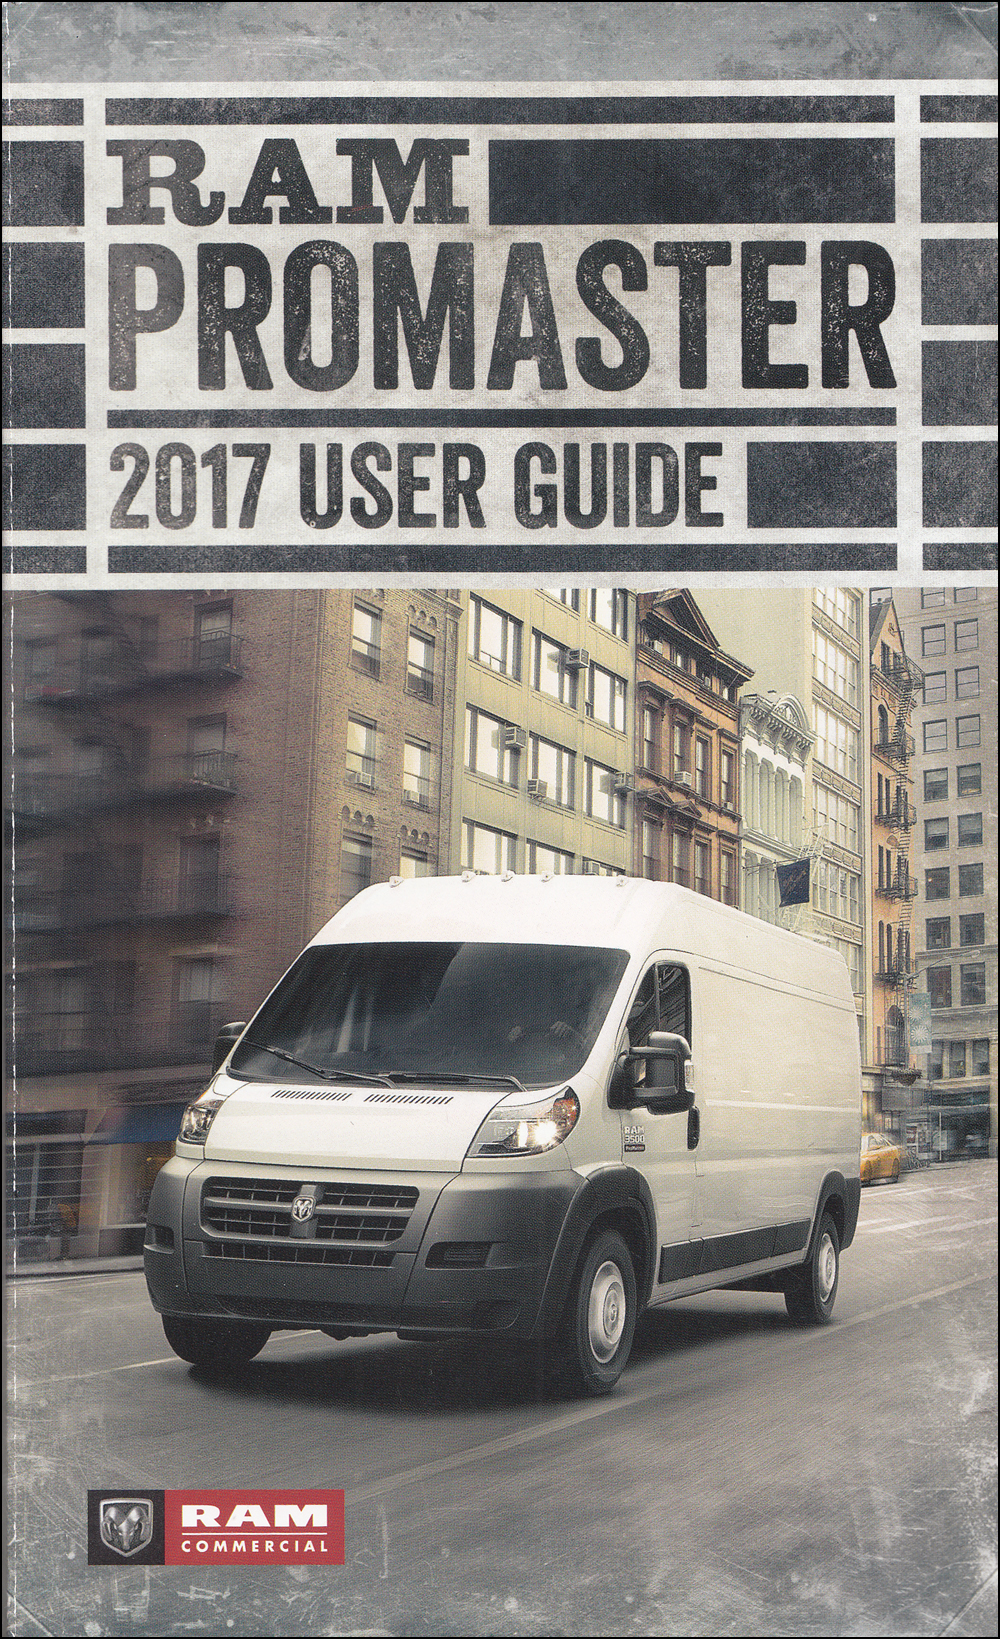 2017 Ram Promaster User Guide Owner's Manual Original